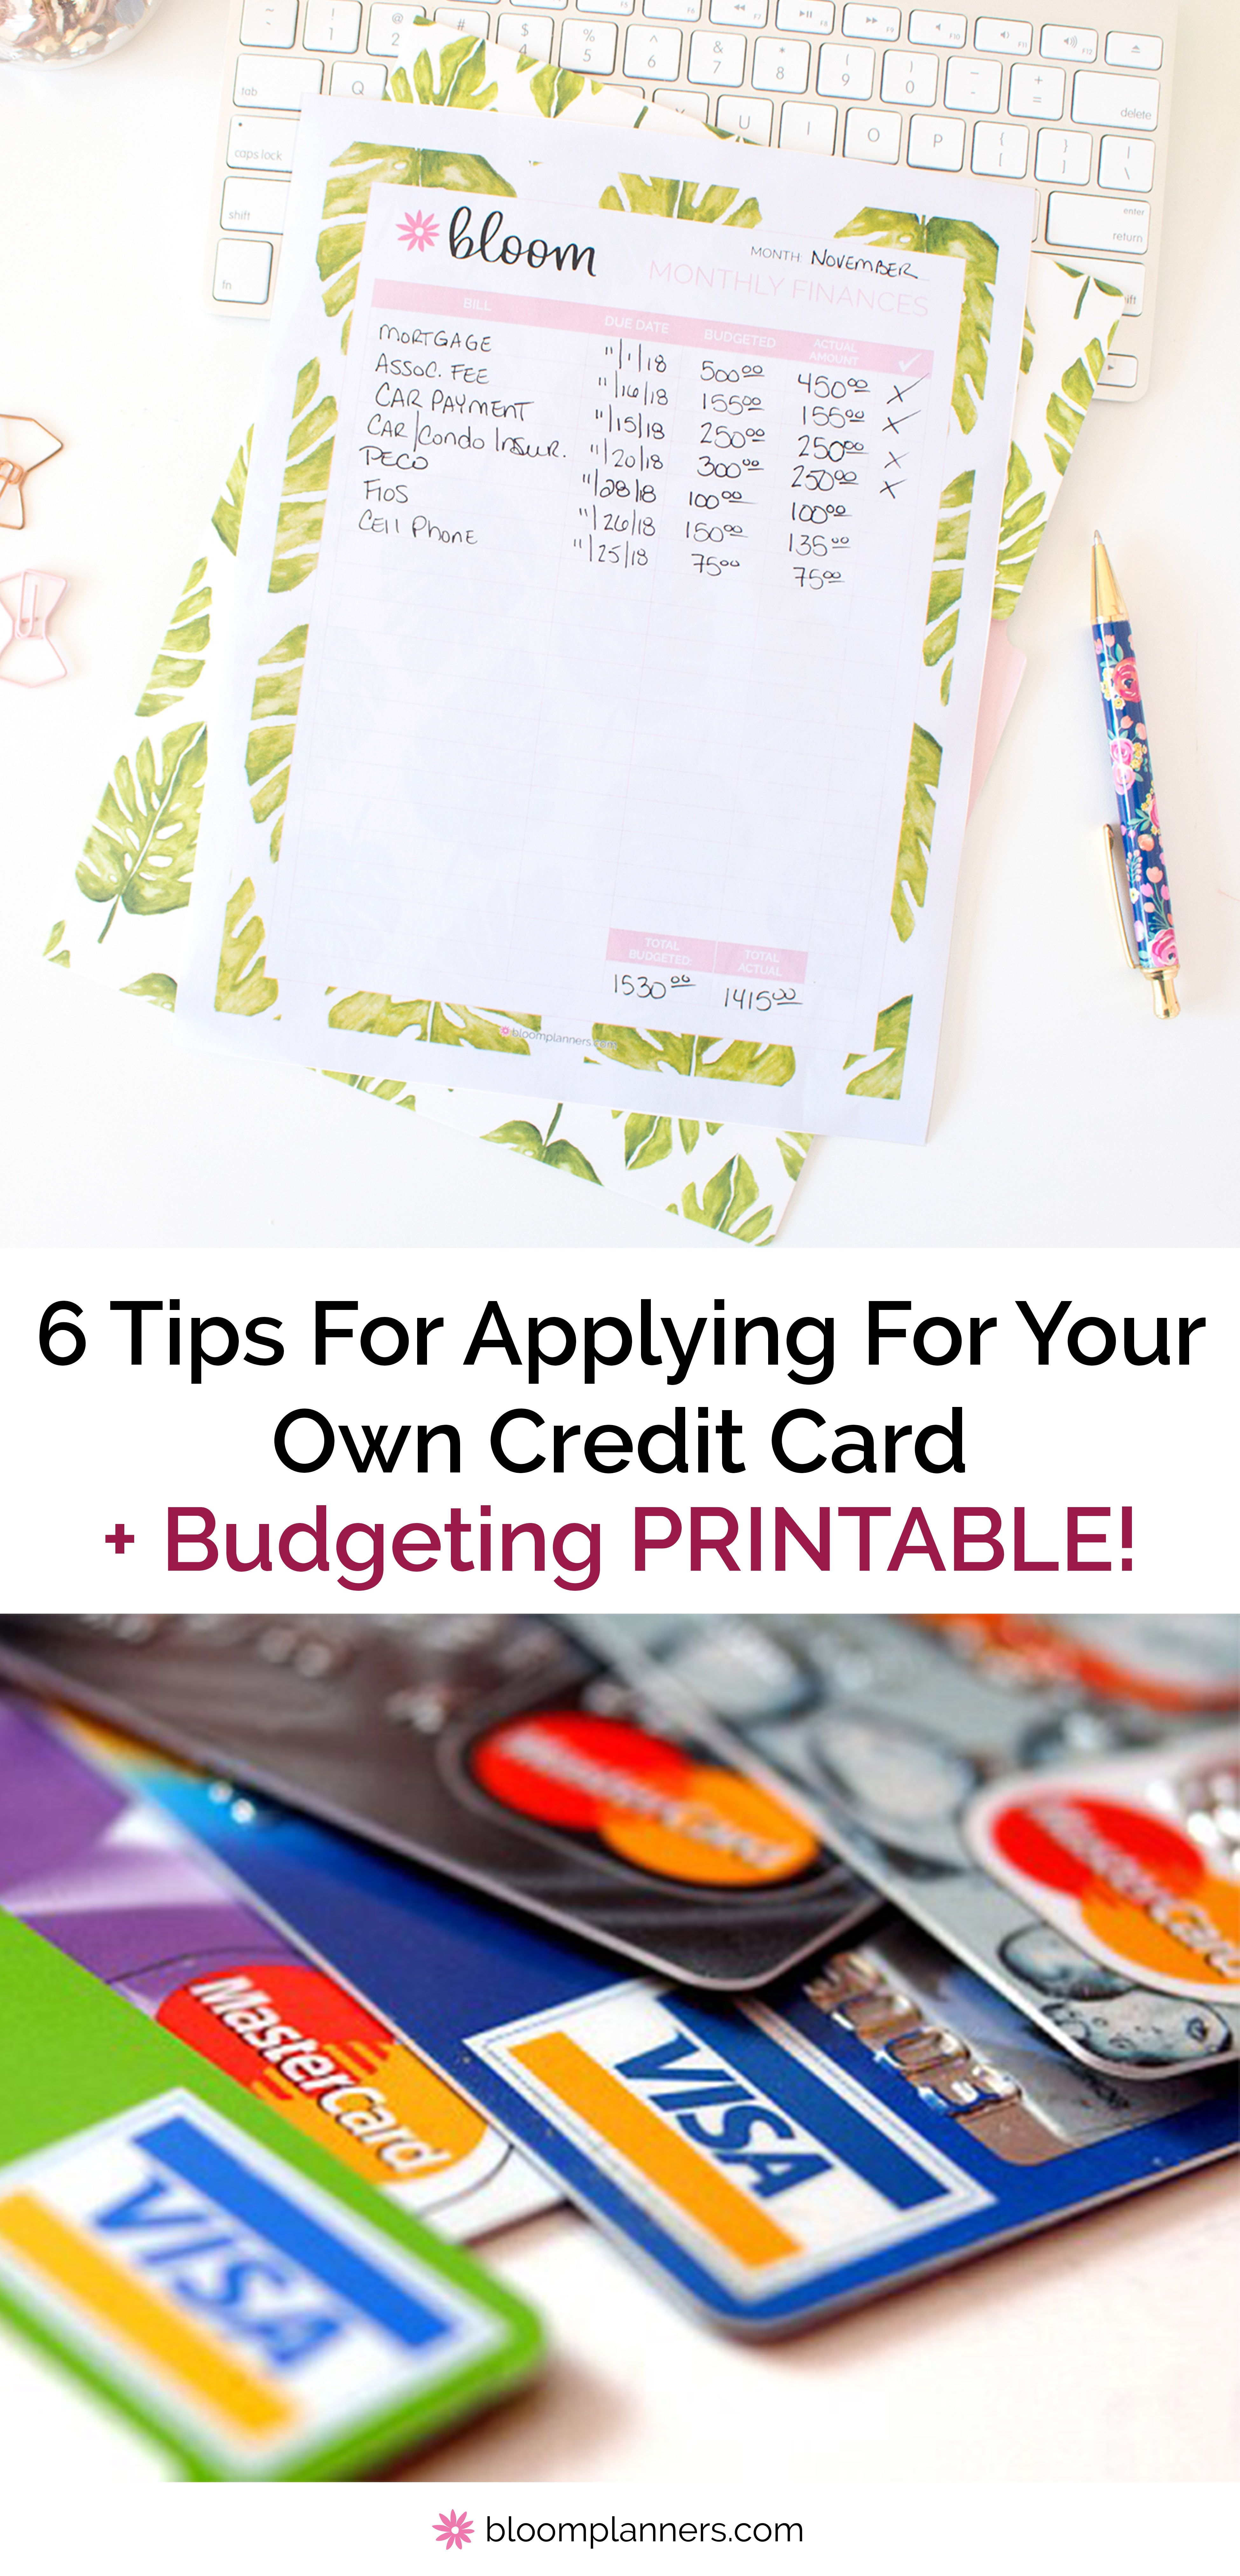 6 Tips For Applying For Your Own Credit Card Budgeting